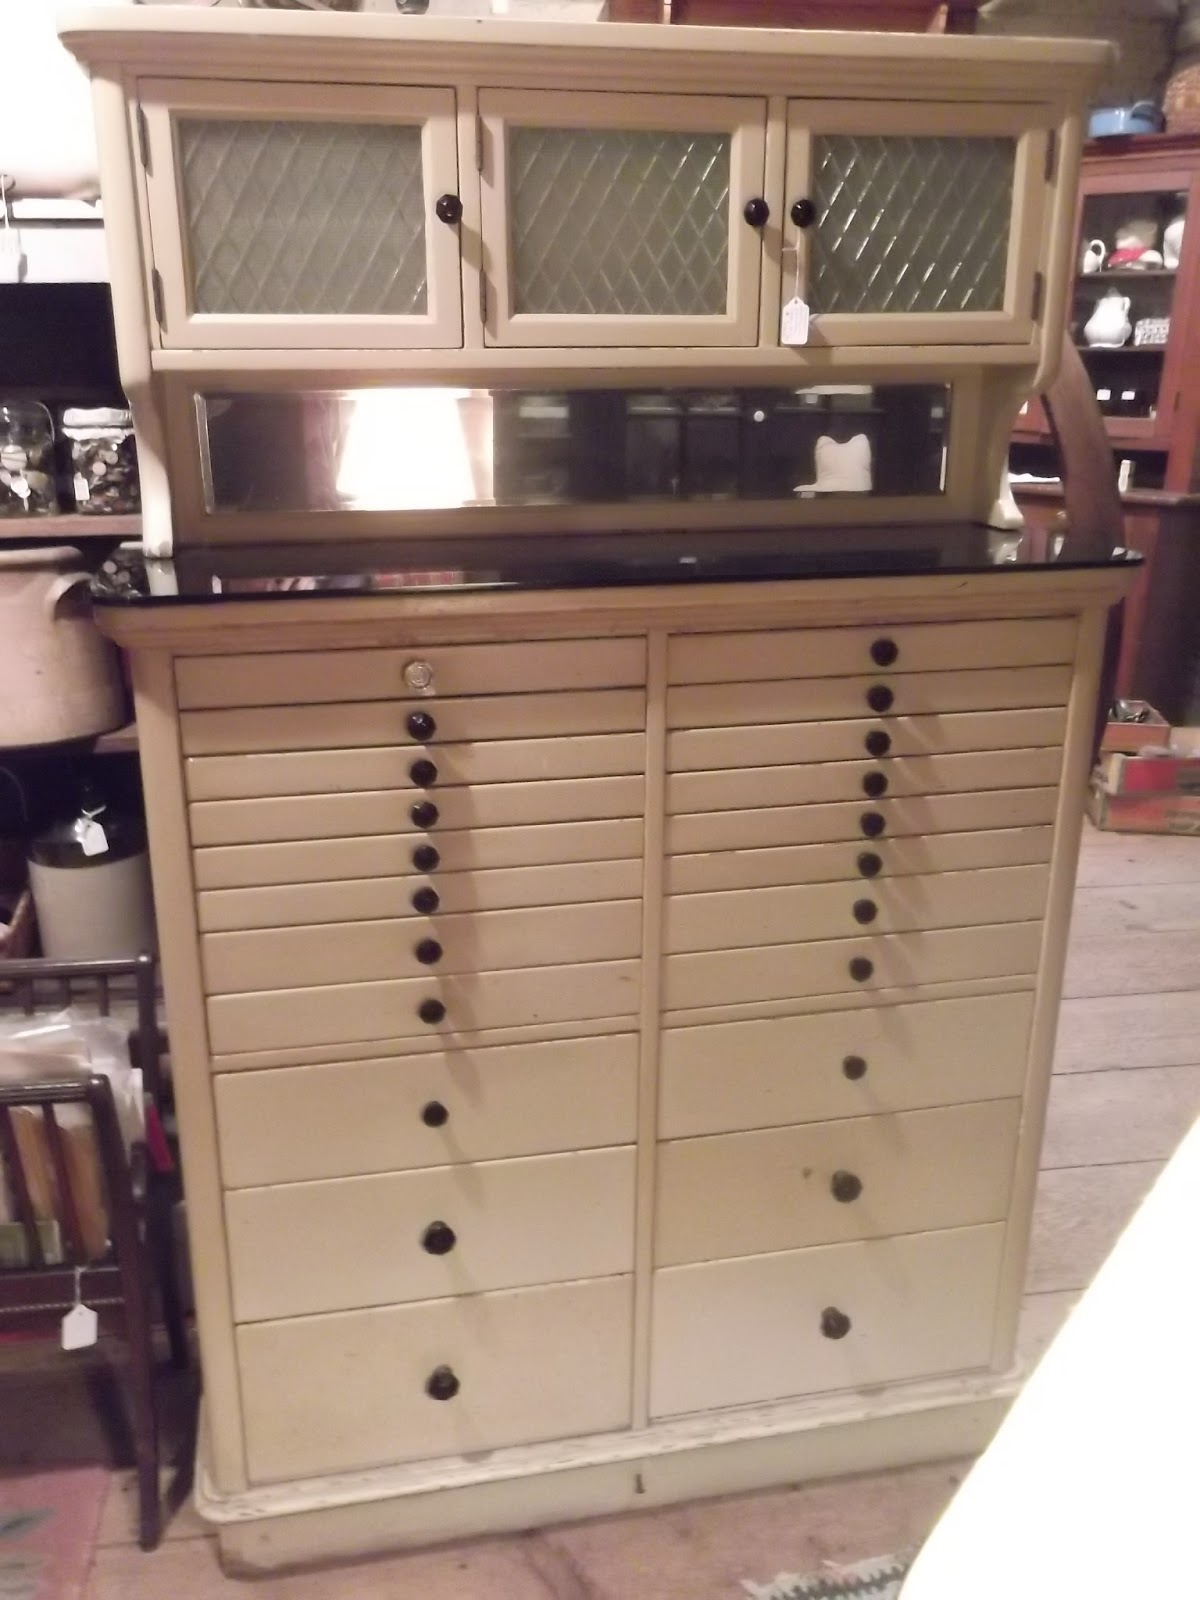 Wexford General Store: Dental Cabinet/Reduced 20% Off